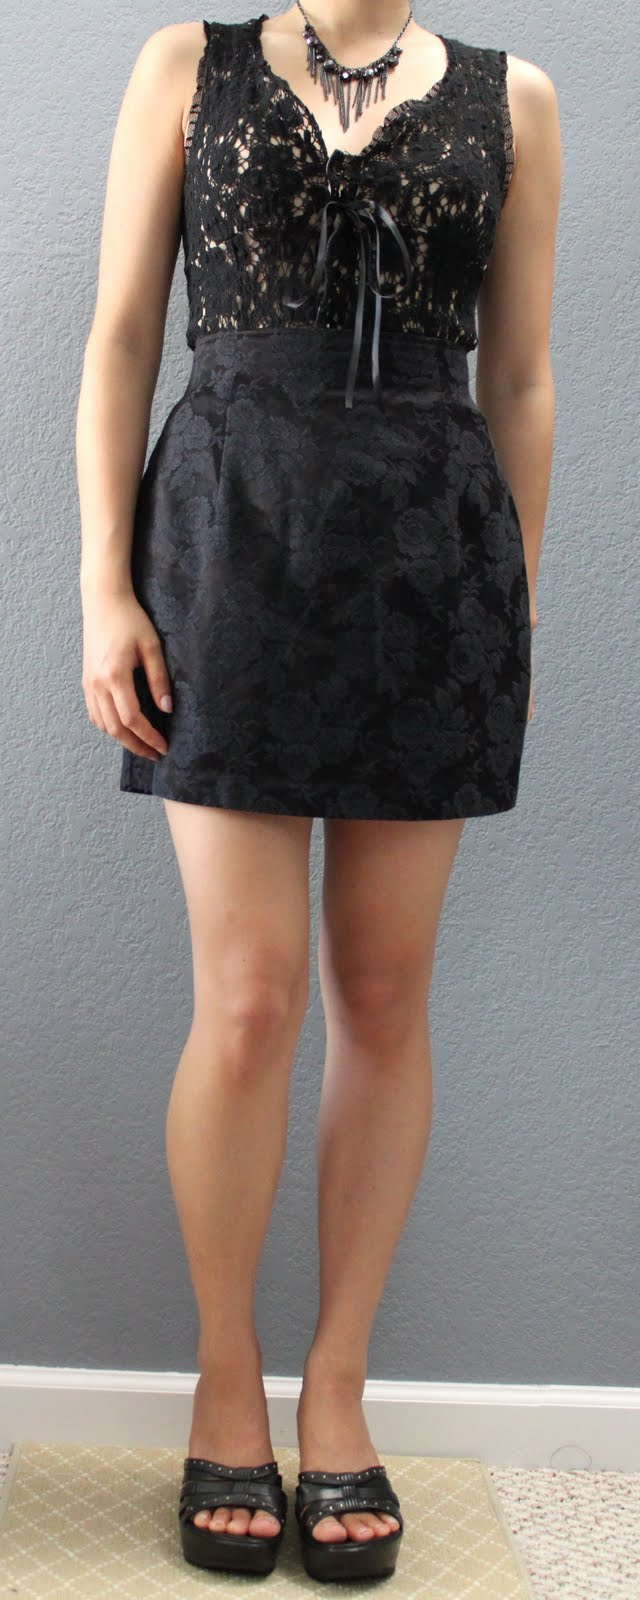 LePetiteLemon Outfit 28 - Black Lace Top + Black Floral Skirt